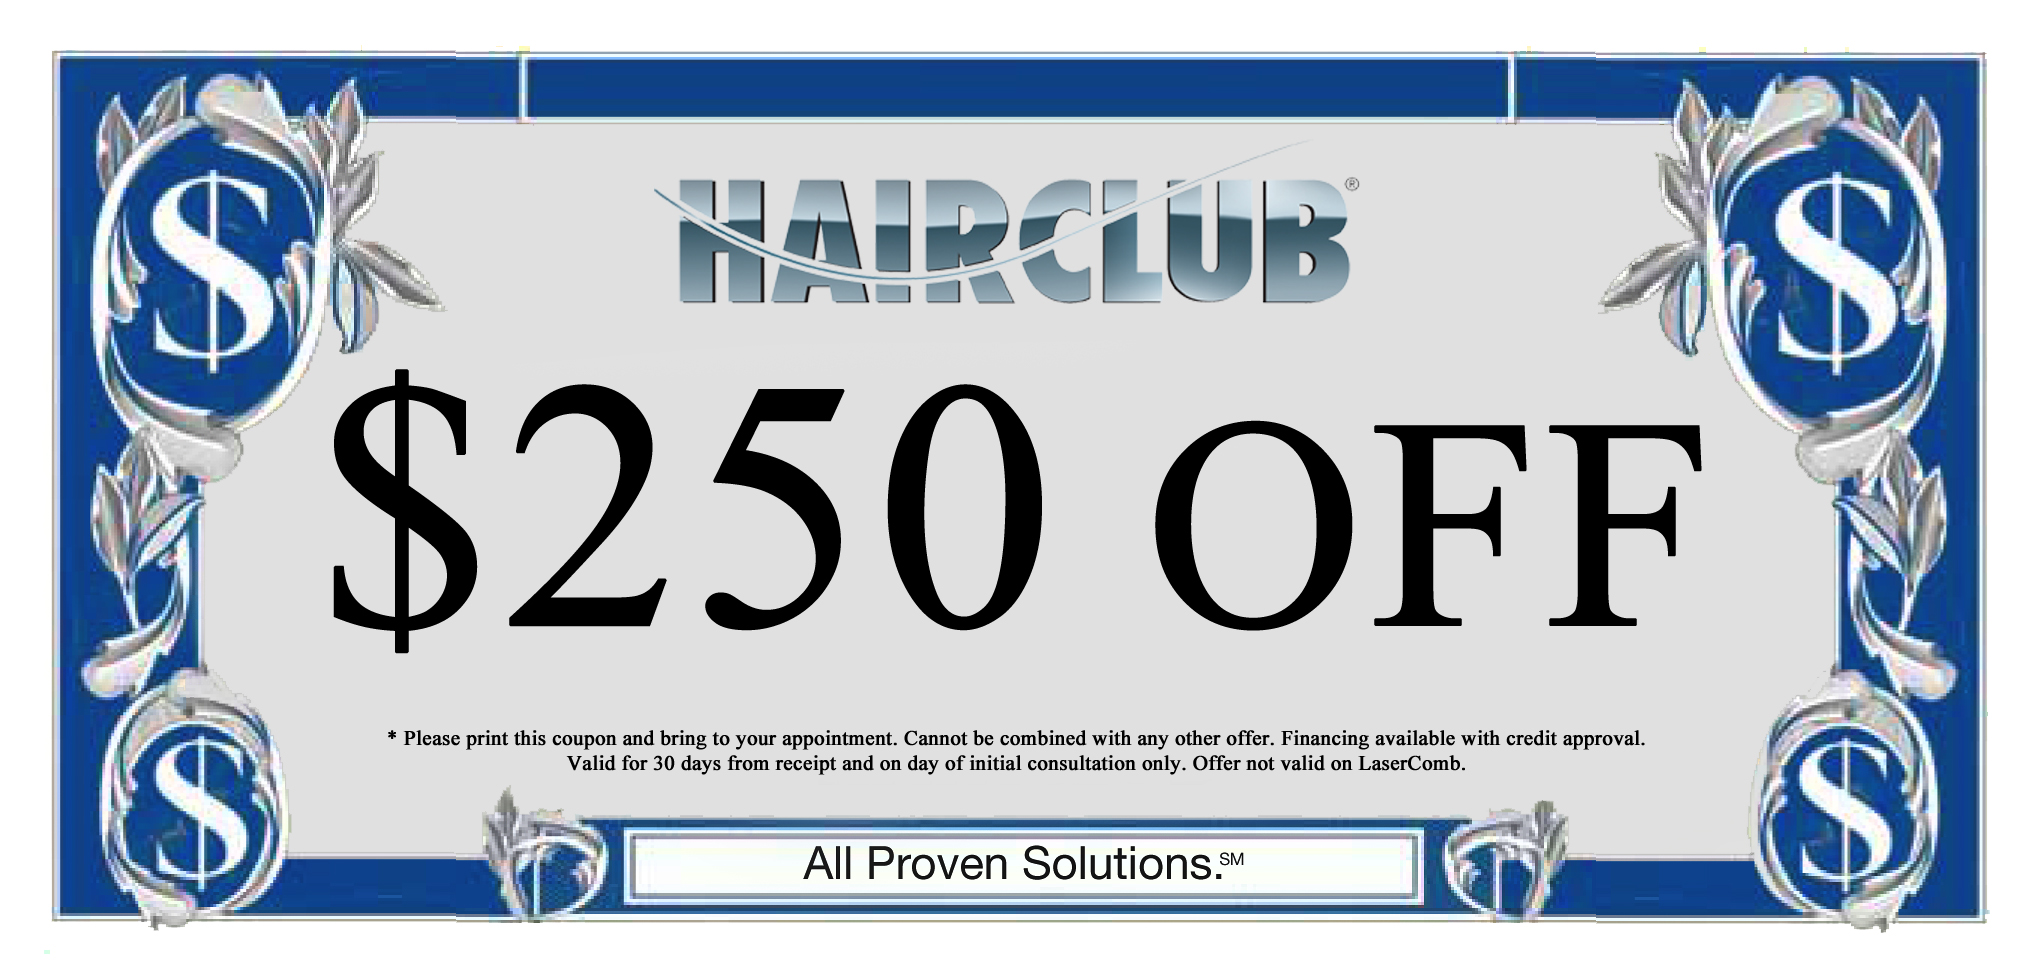 hair sisters coupon code promo codes 2014 look after hair ...